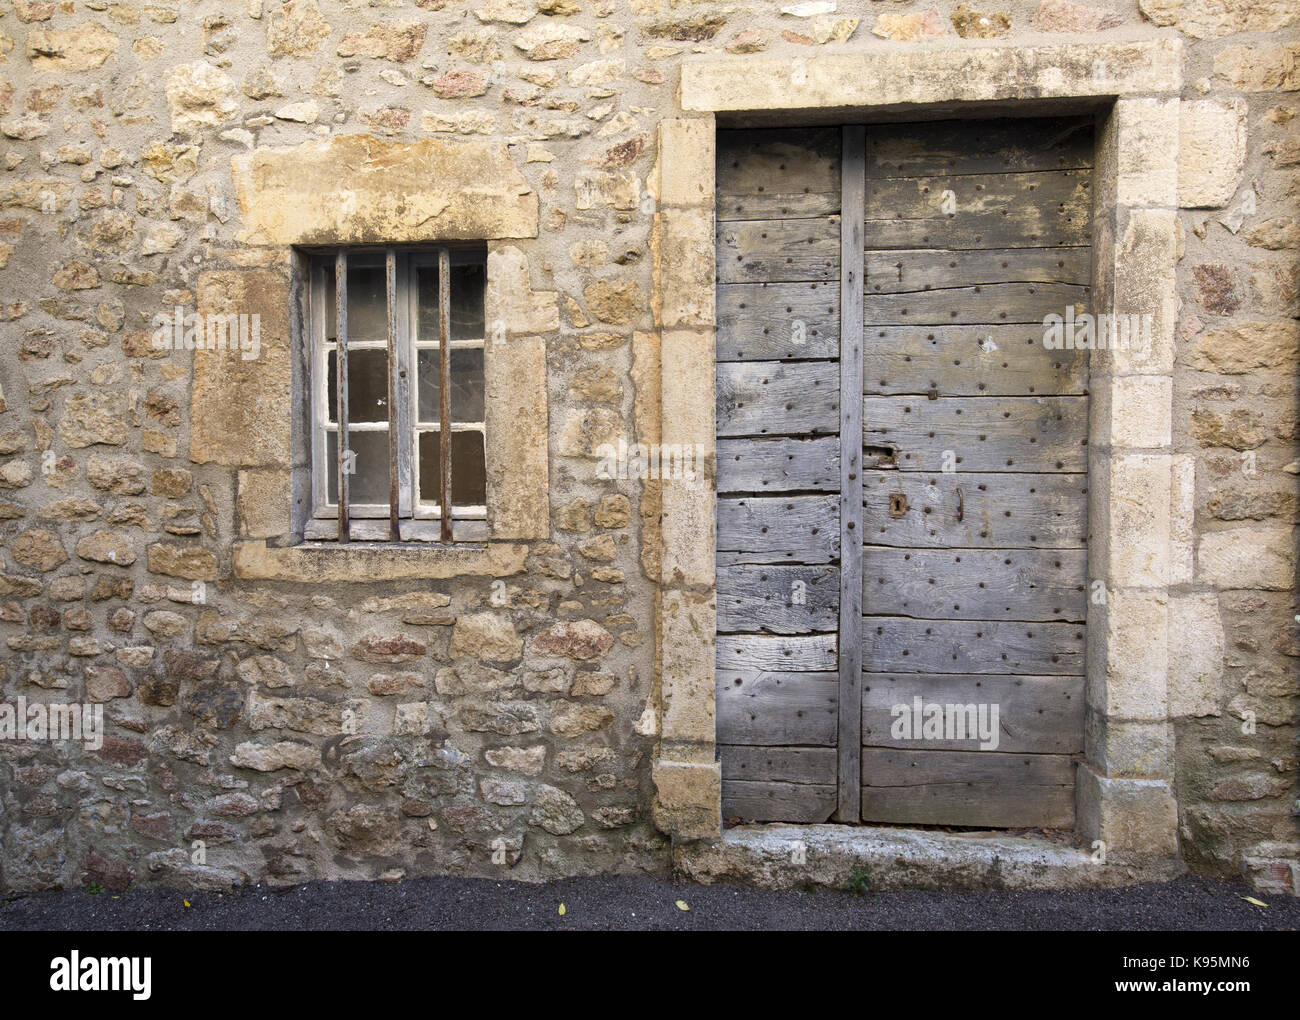 Ancient wooden door and window, Avallon, Yonne, Burgundy, France - Stock Image